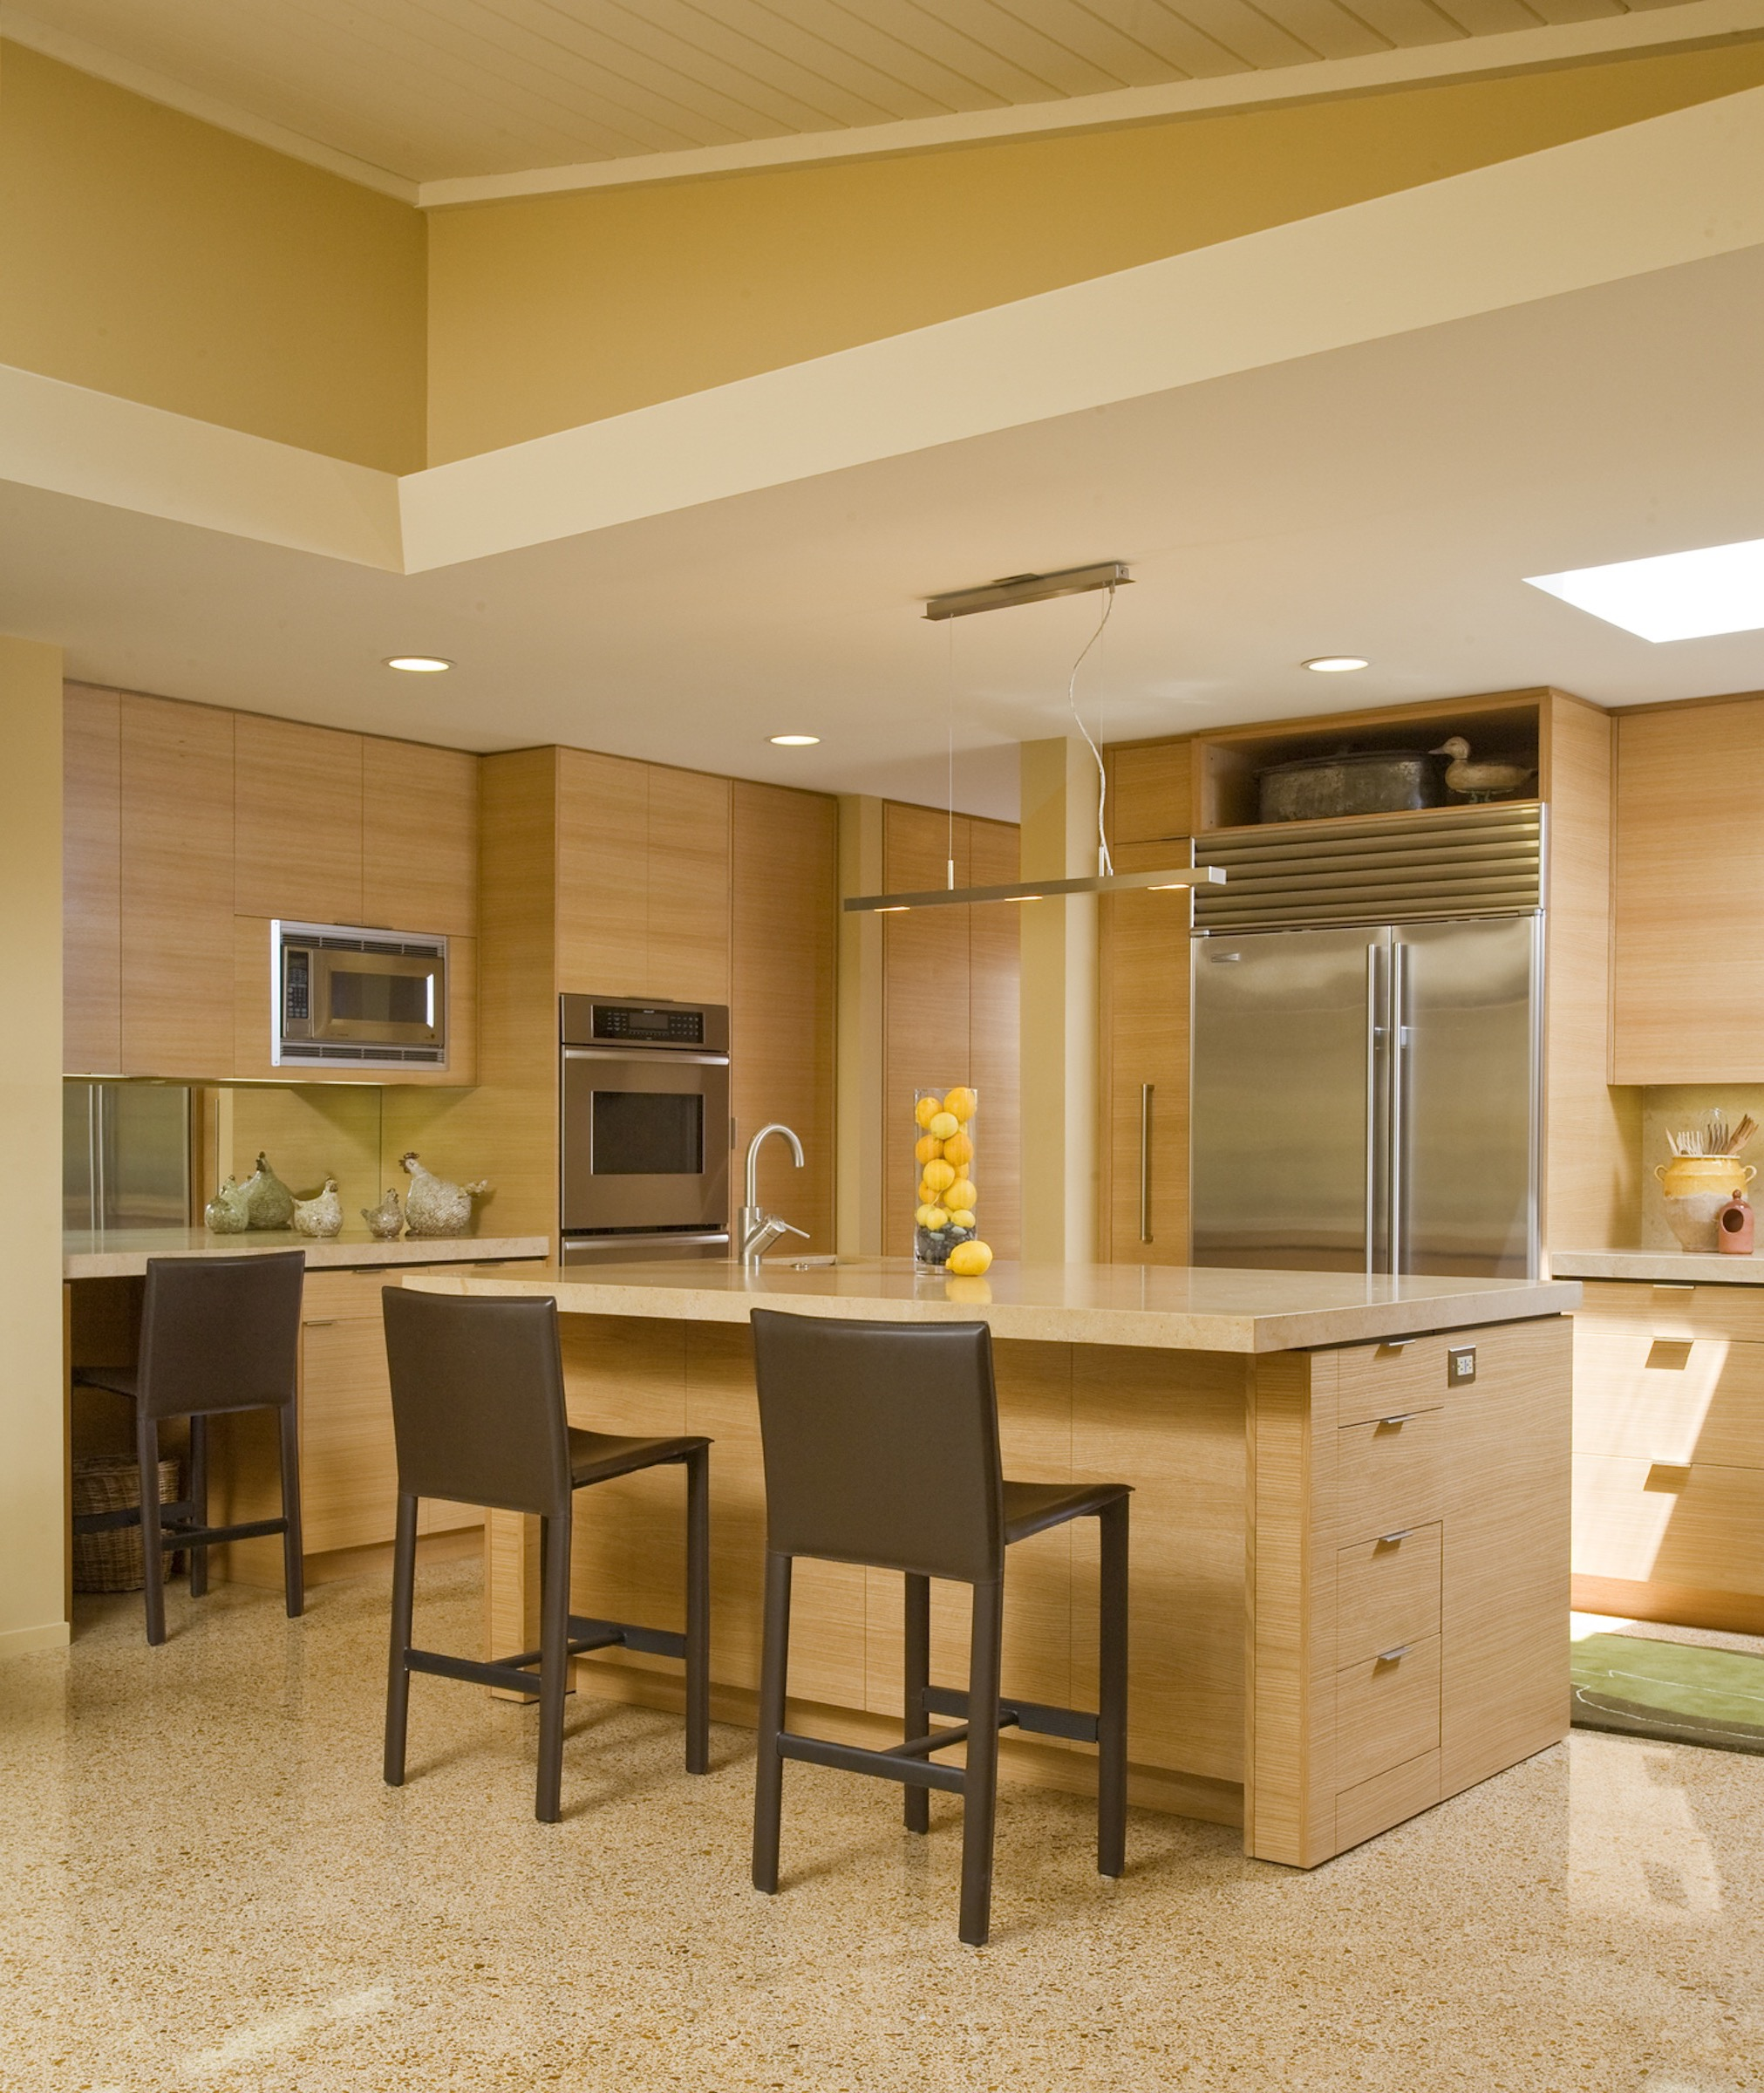 Yellow Custom Kitchen Cabinets In Contemporary Design (Image 17 of 18)